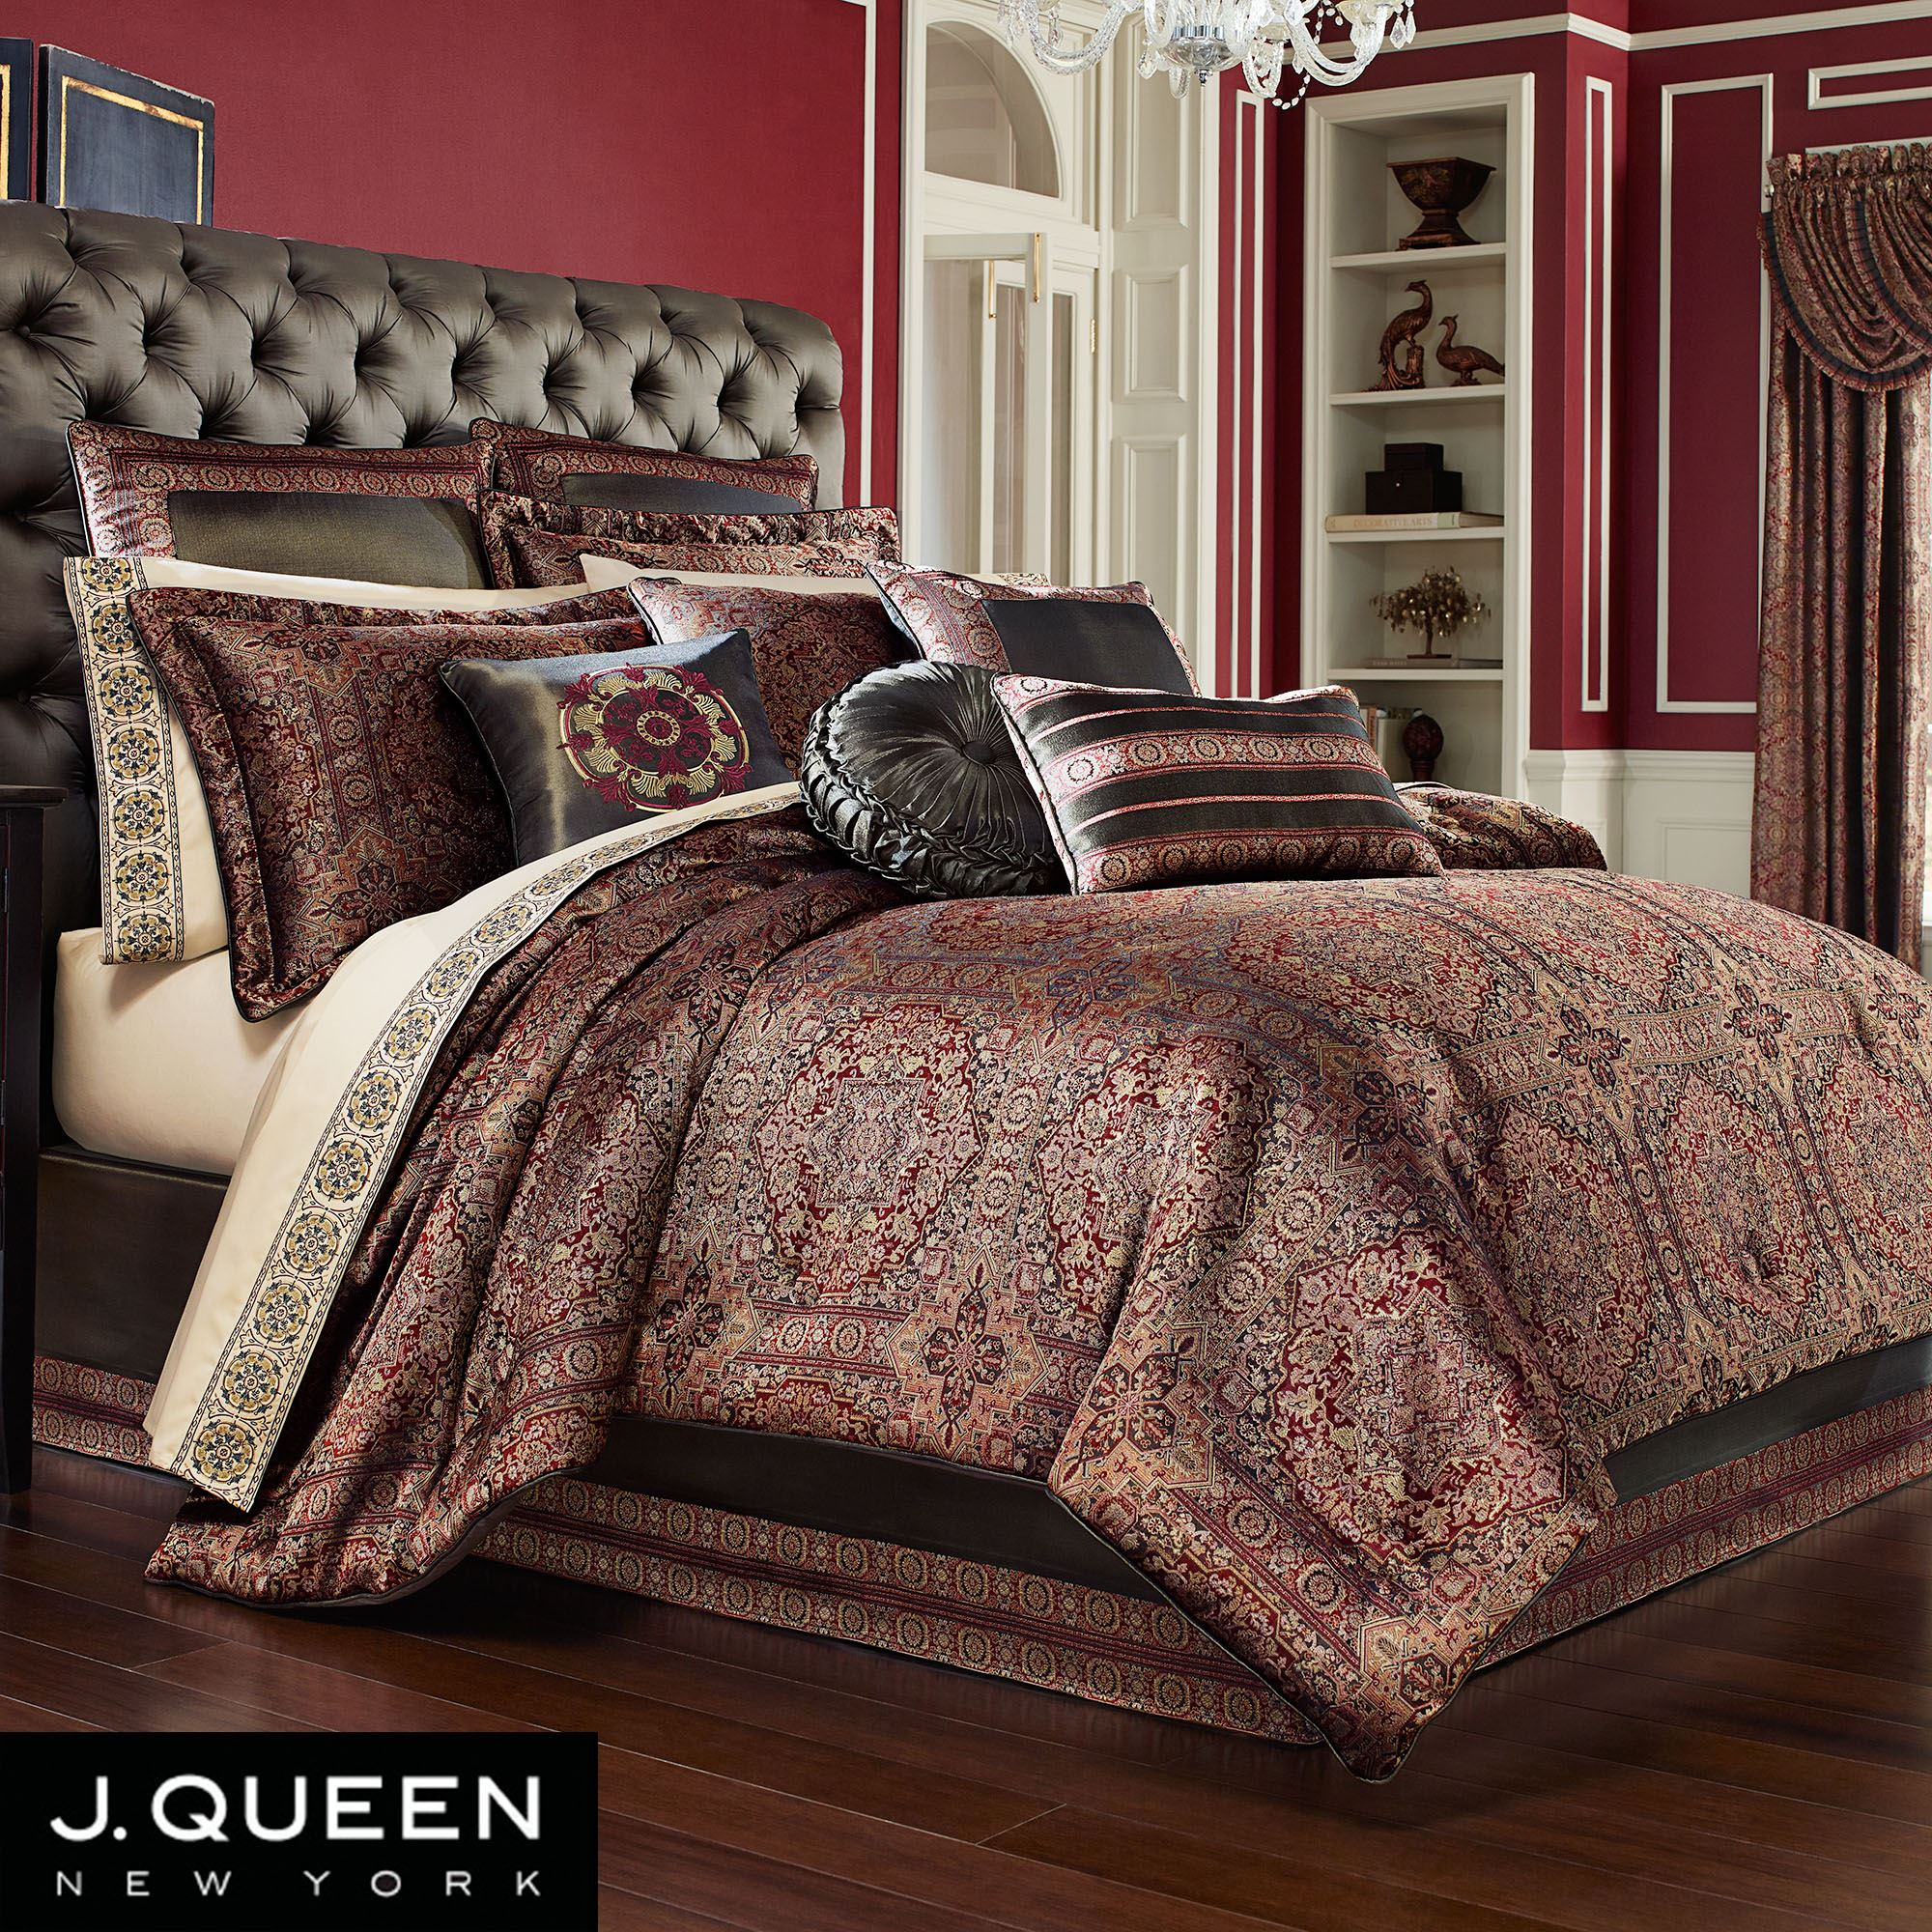 bedding bedsize then king cozy comforter set sets black for bed linen bedroom pink plus using teen bright designs contemporary full red queen